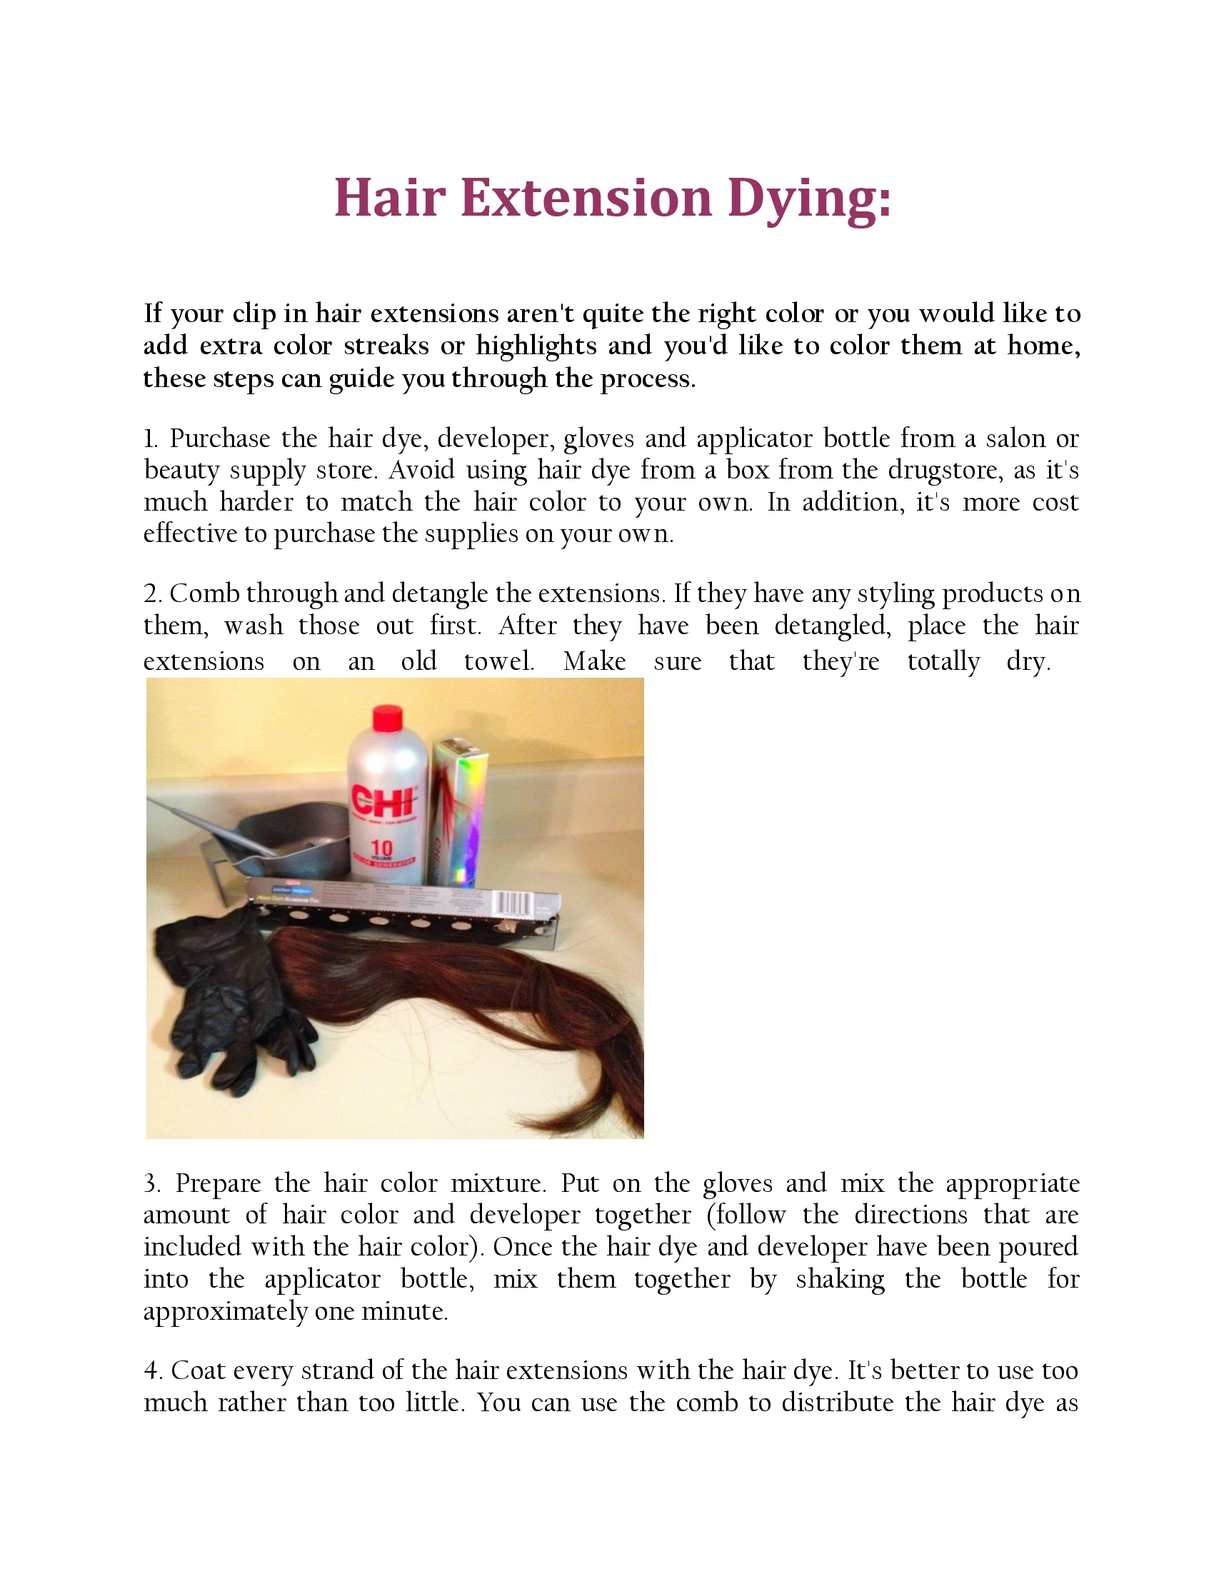 Calamo Hair Extension Dying